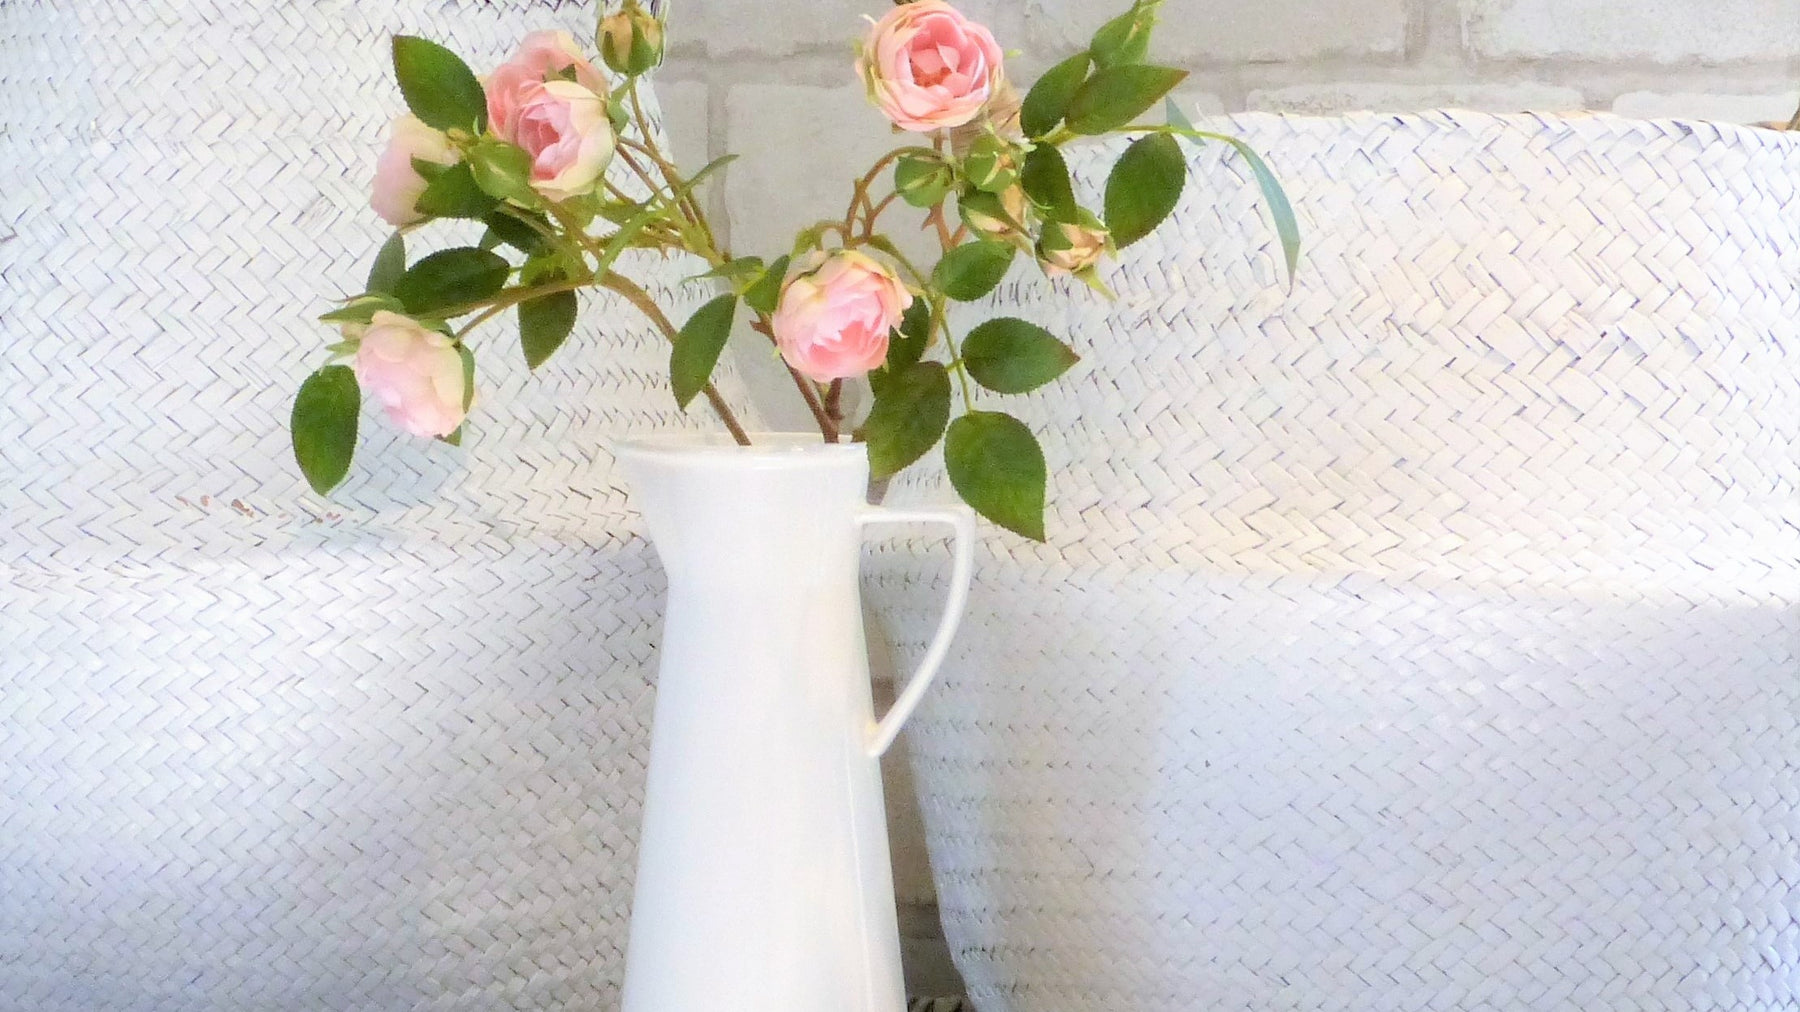 White dipped seagrass belly baskets pink roses white ceramic jug